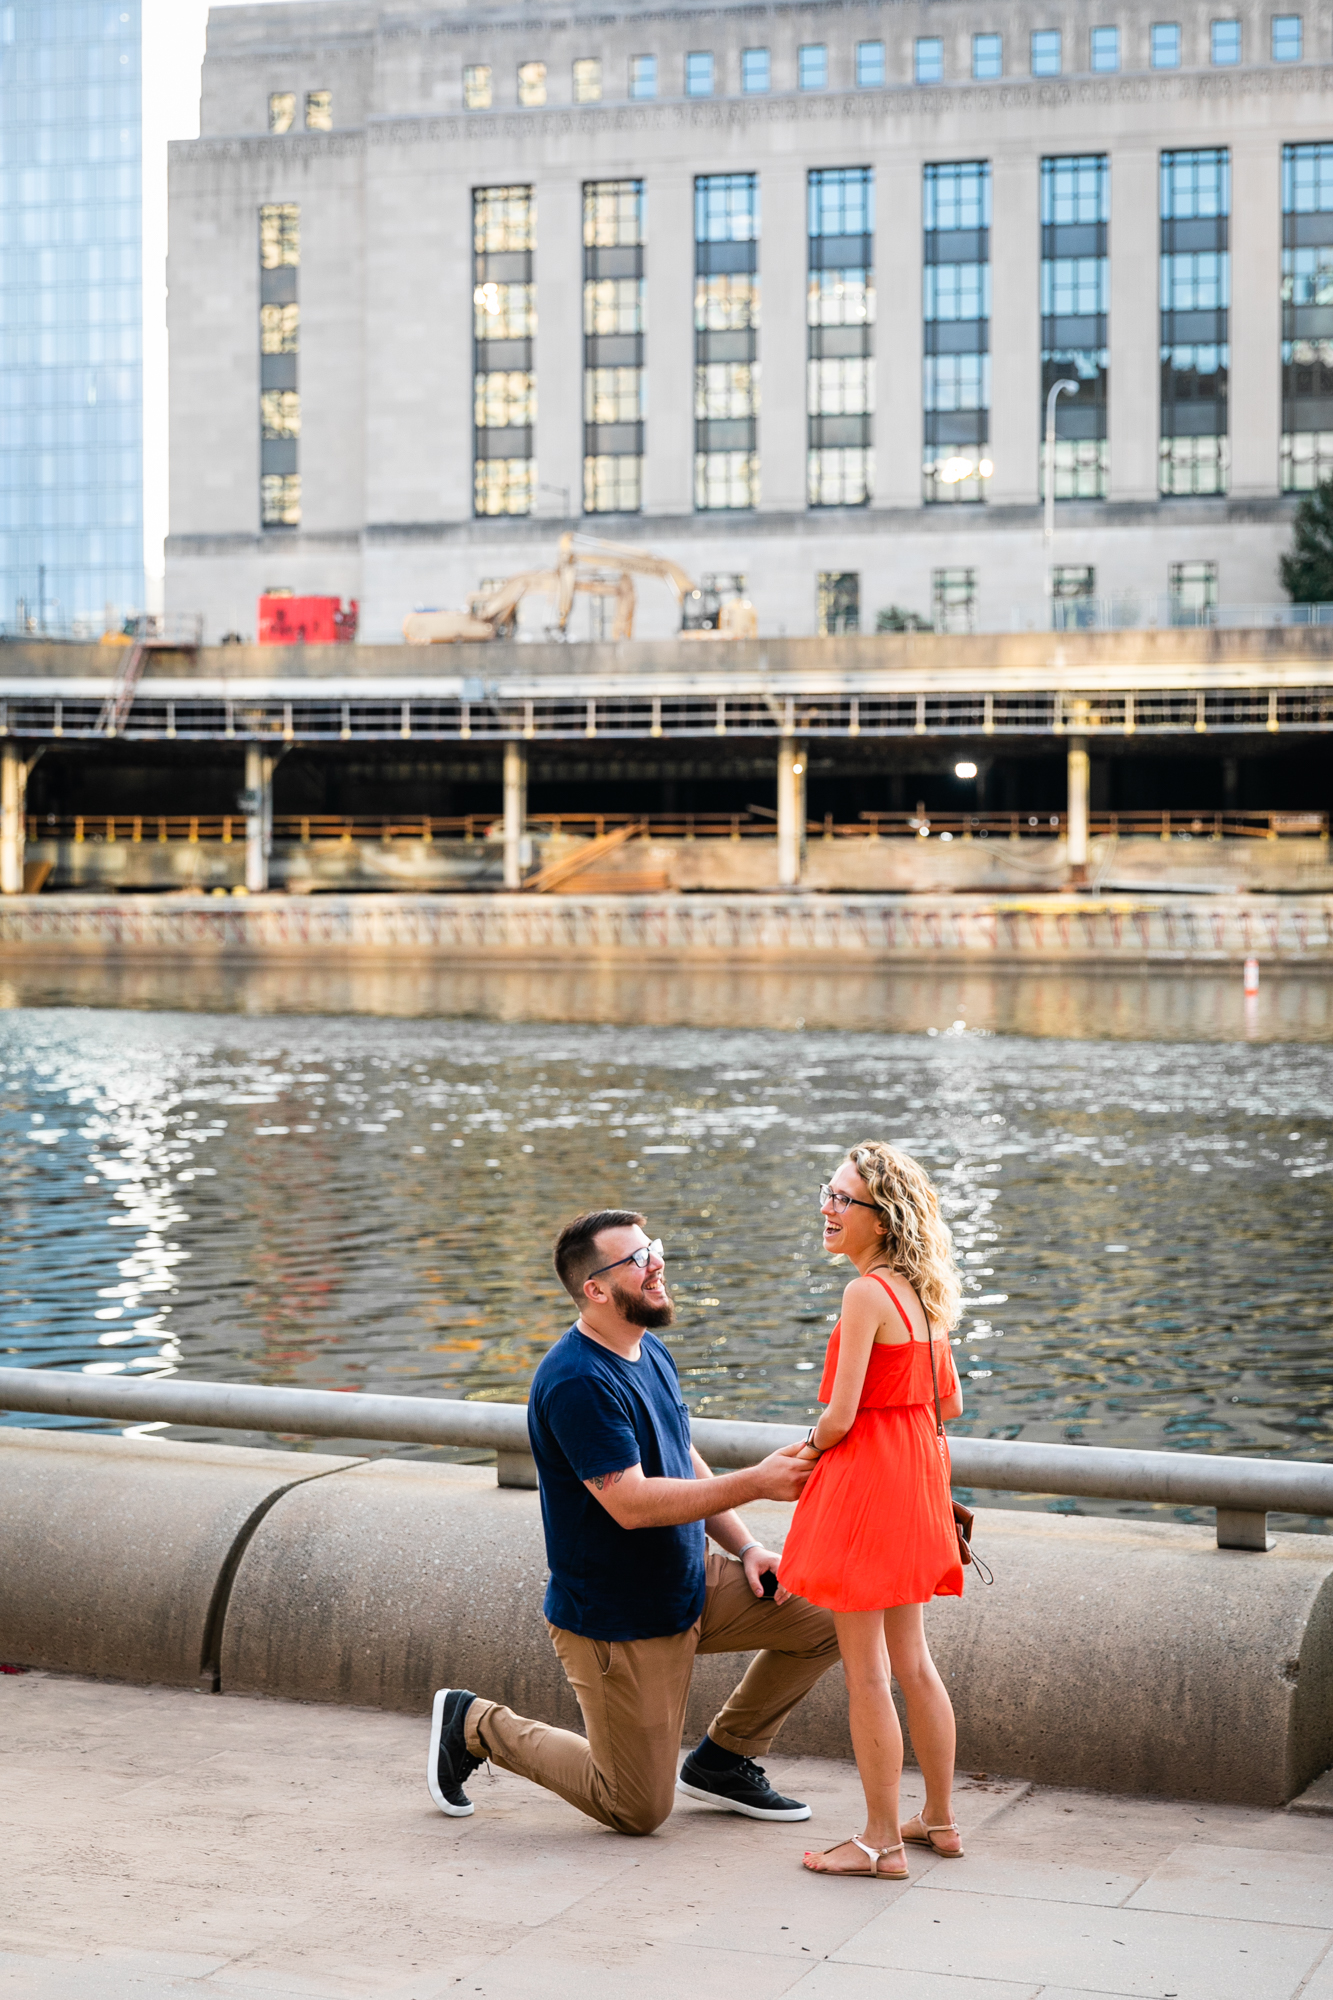 Engagament Photography Philadelphia - LoveStruck Pictures - Schuylkill River Trail-001.jpg